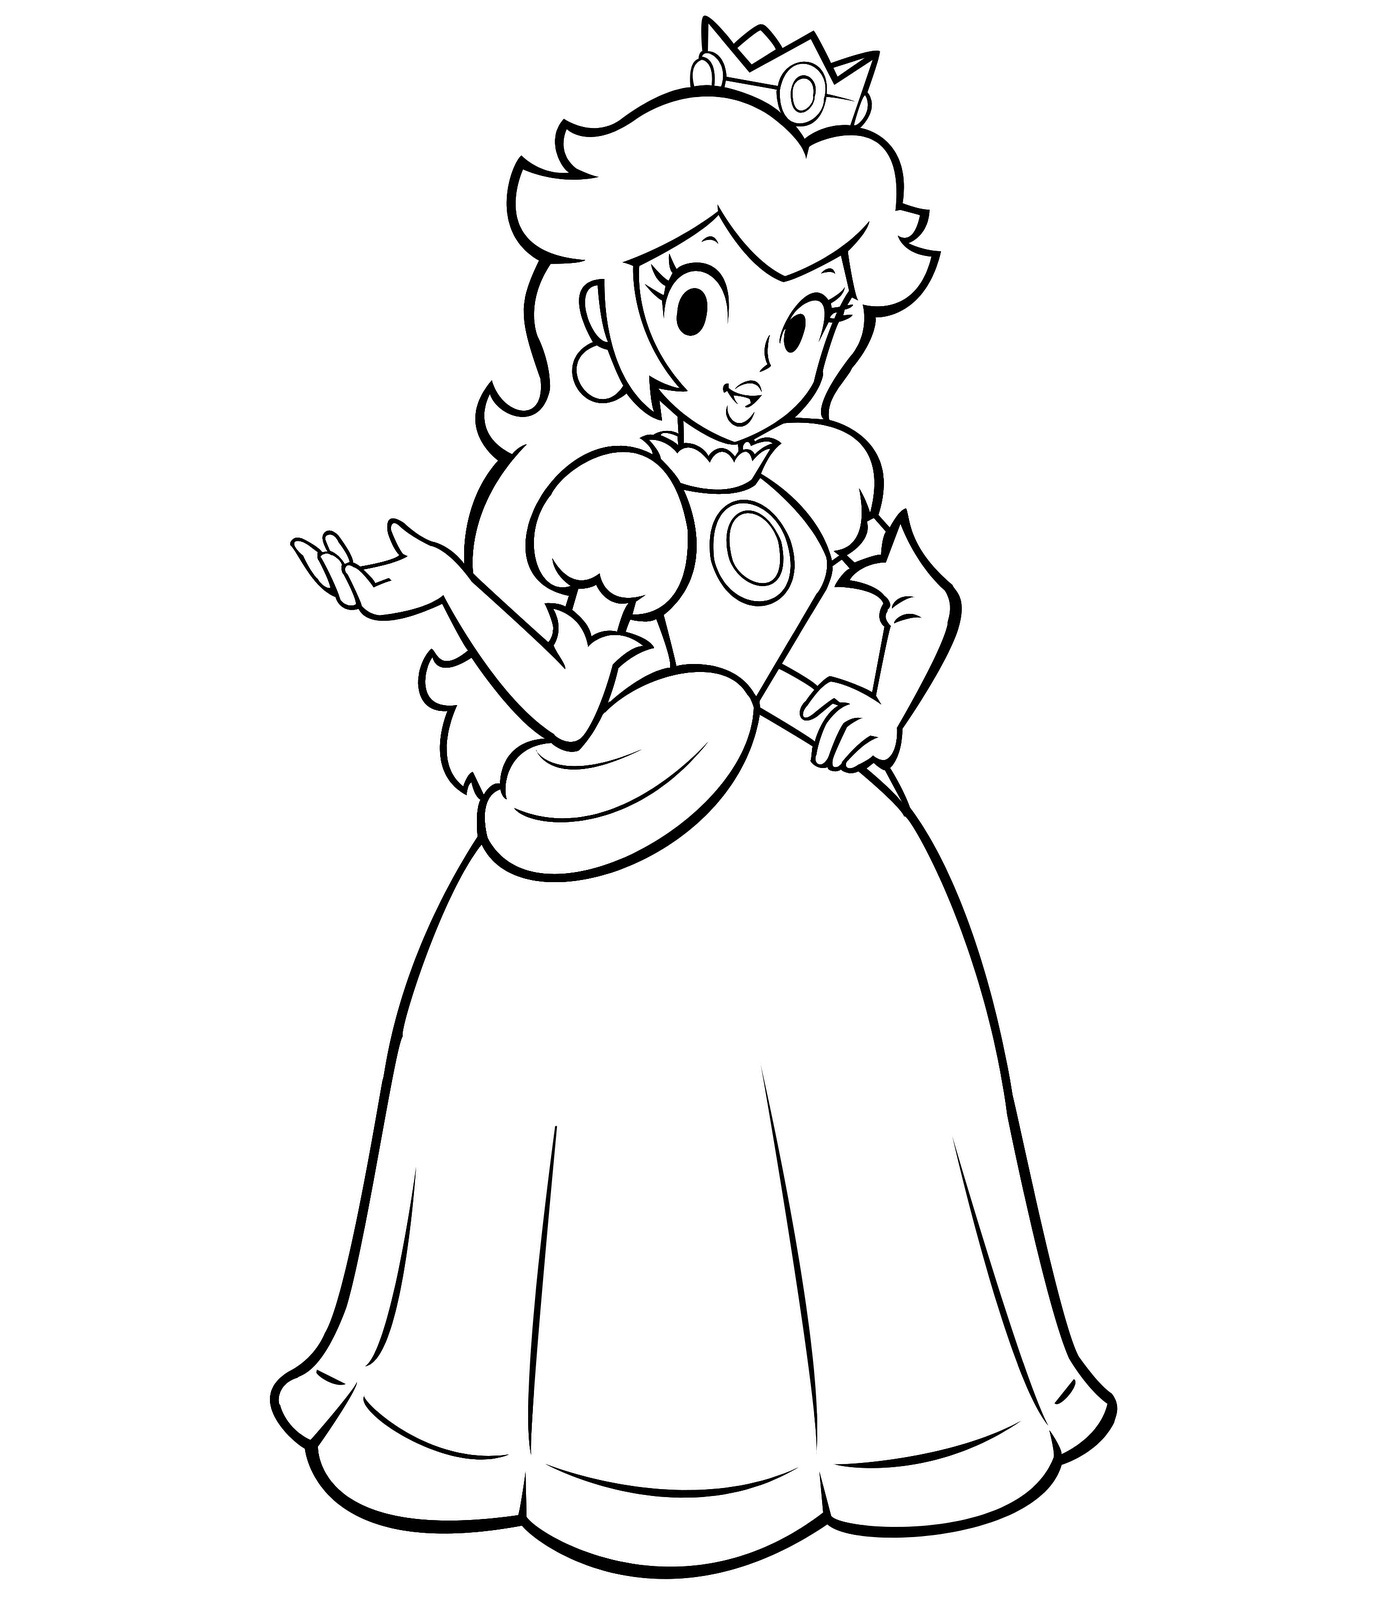 peach coloring pages - princess peach coloring pages